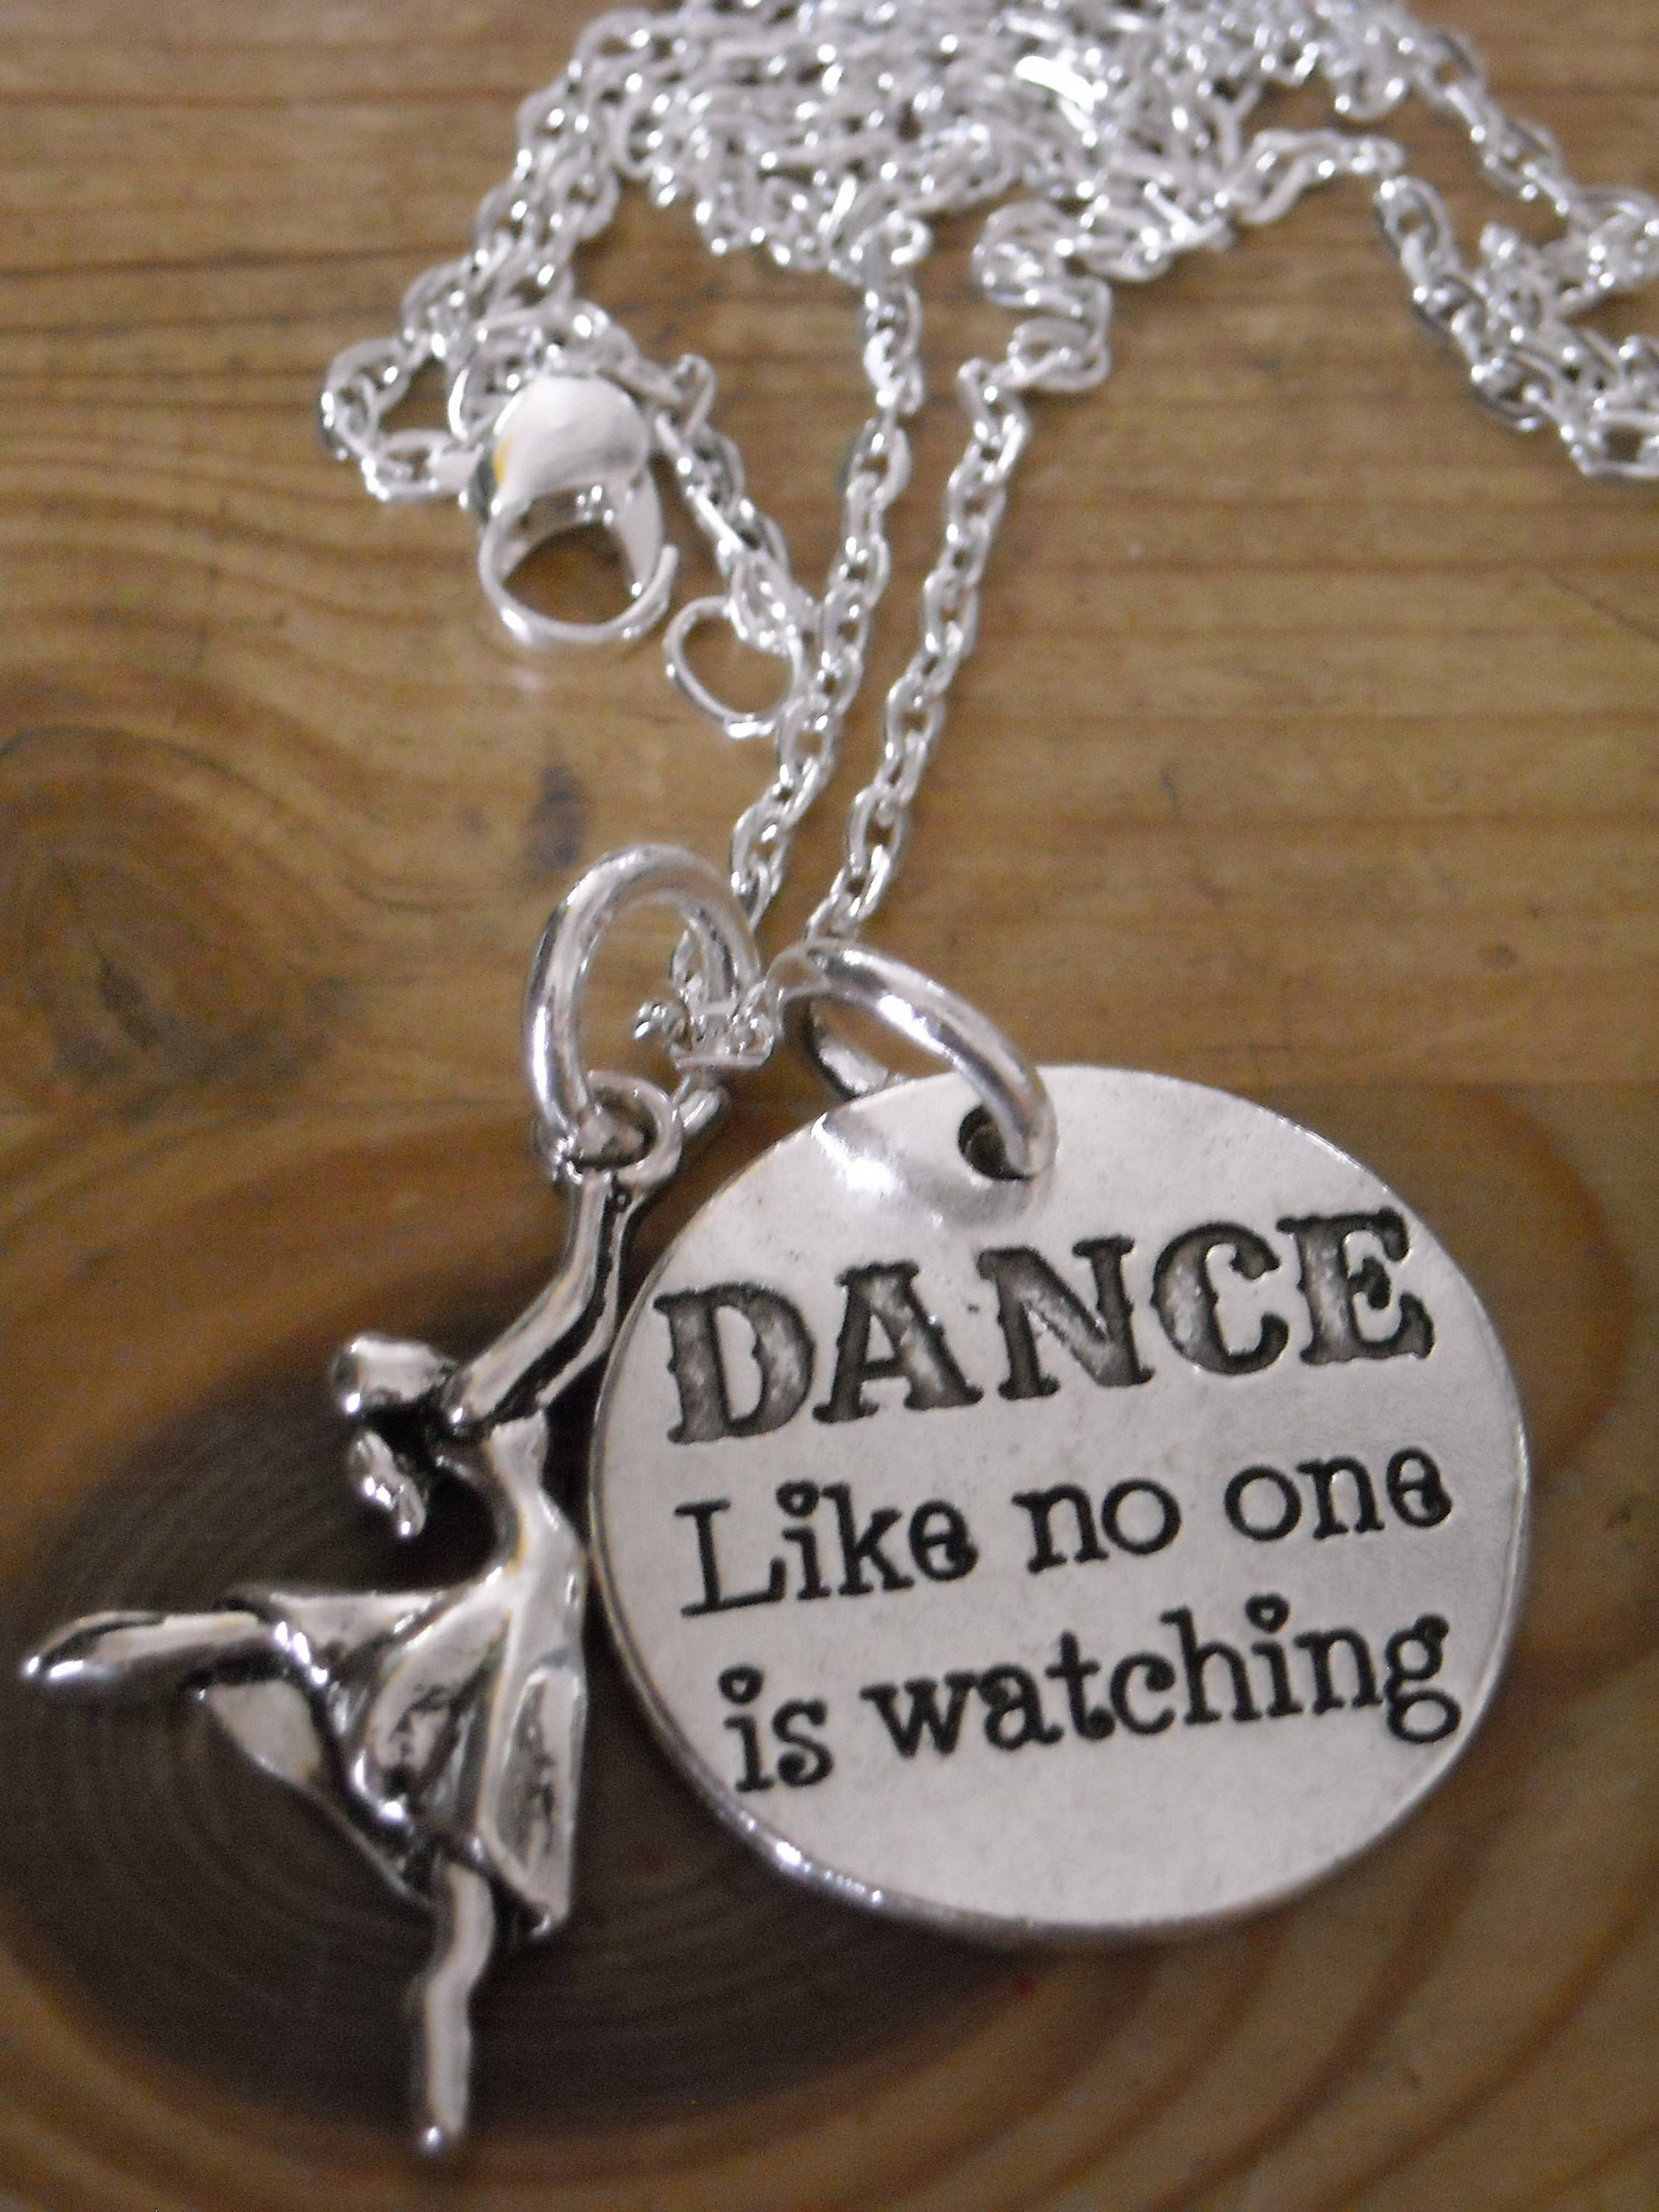 """New ~ Silver ~ DANCE ~ Ballerina~ Ballet ~ Ballerina Dancer Necklace and Word Charm """"DANCE like no one is watching"""" by GlamRusJewels on Etsy"""